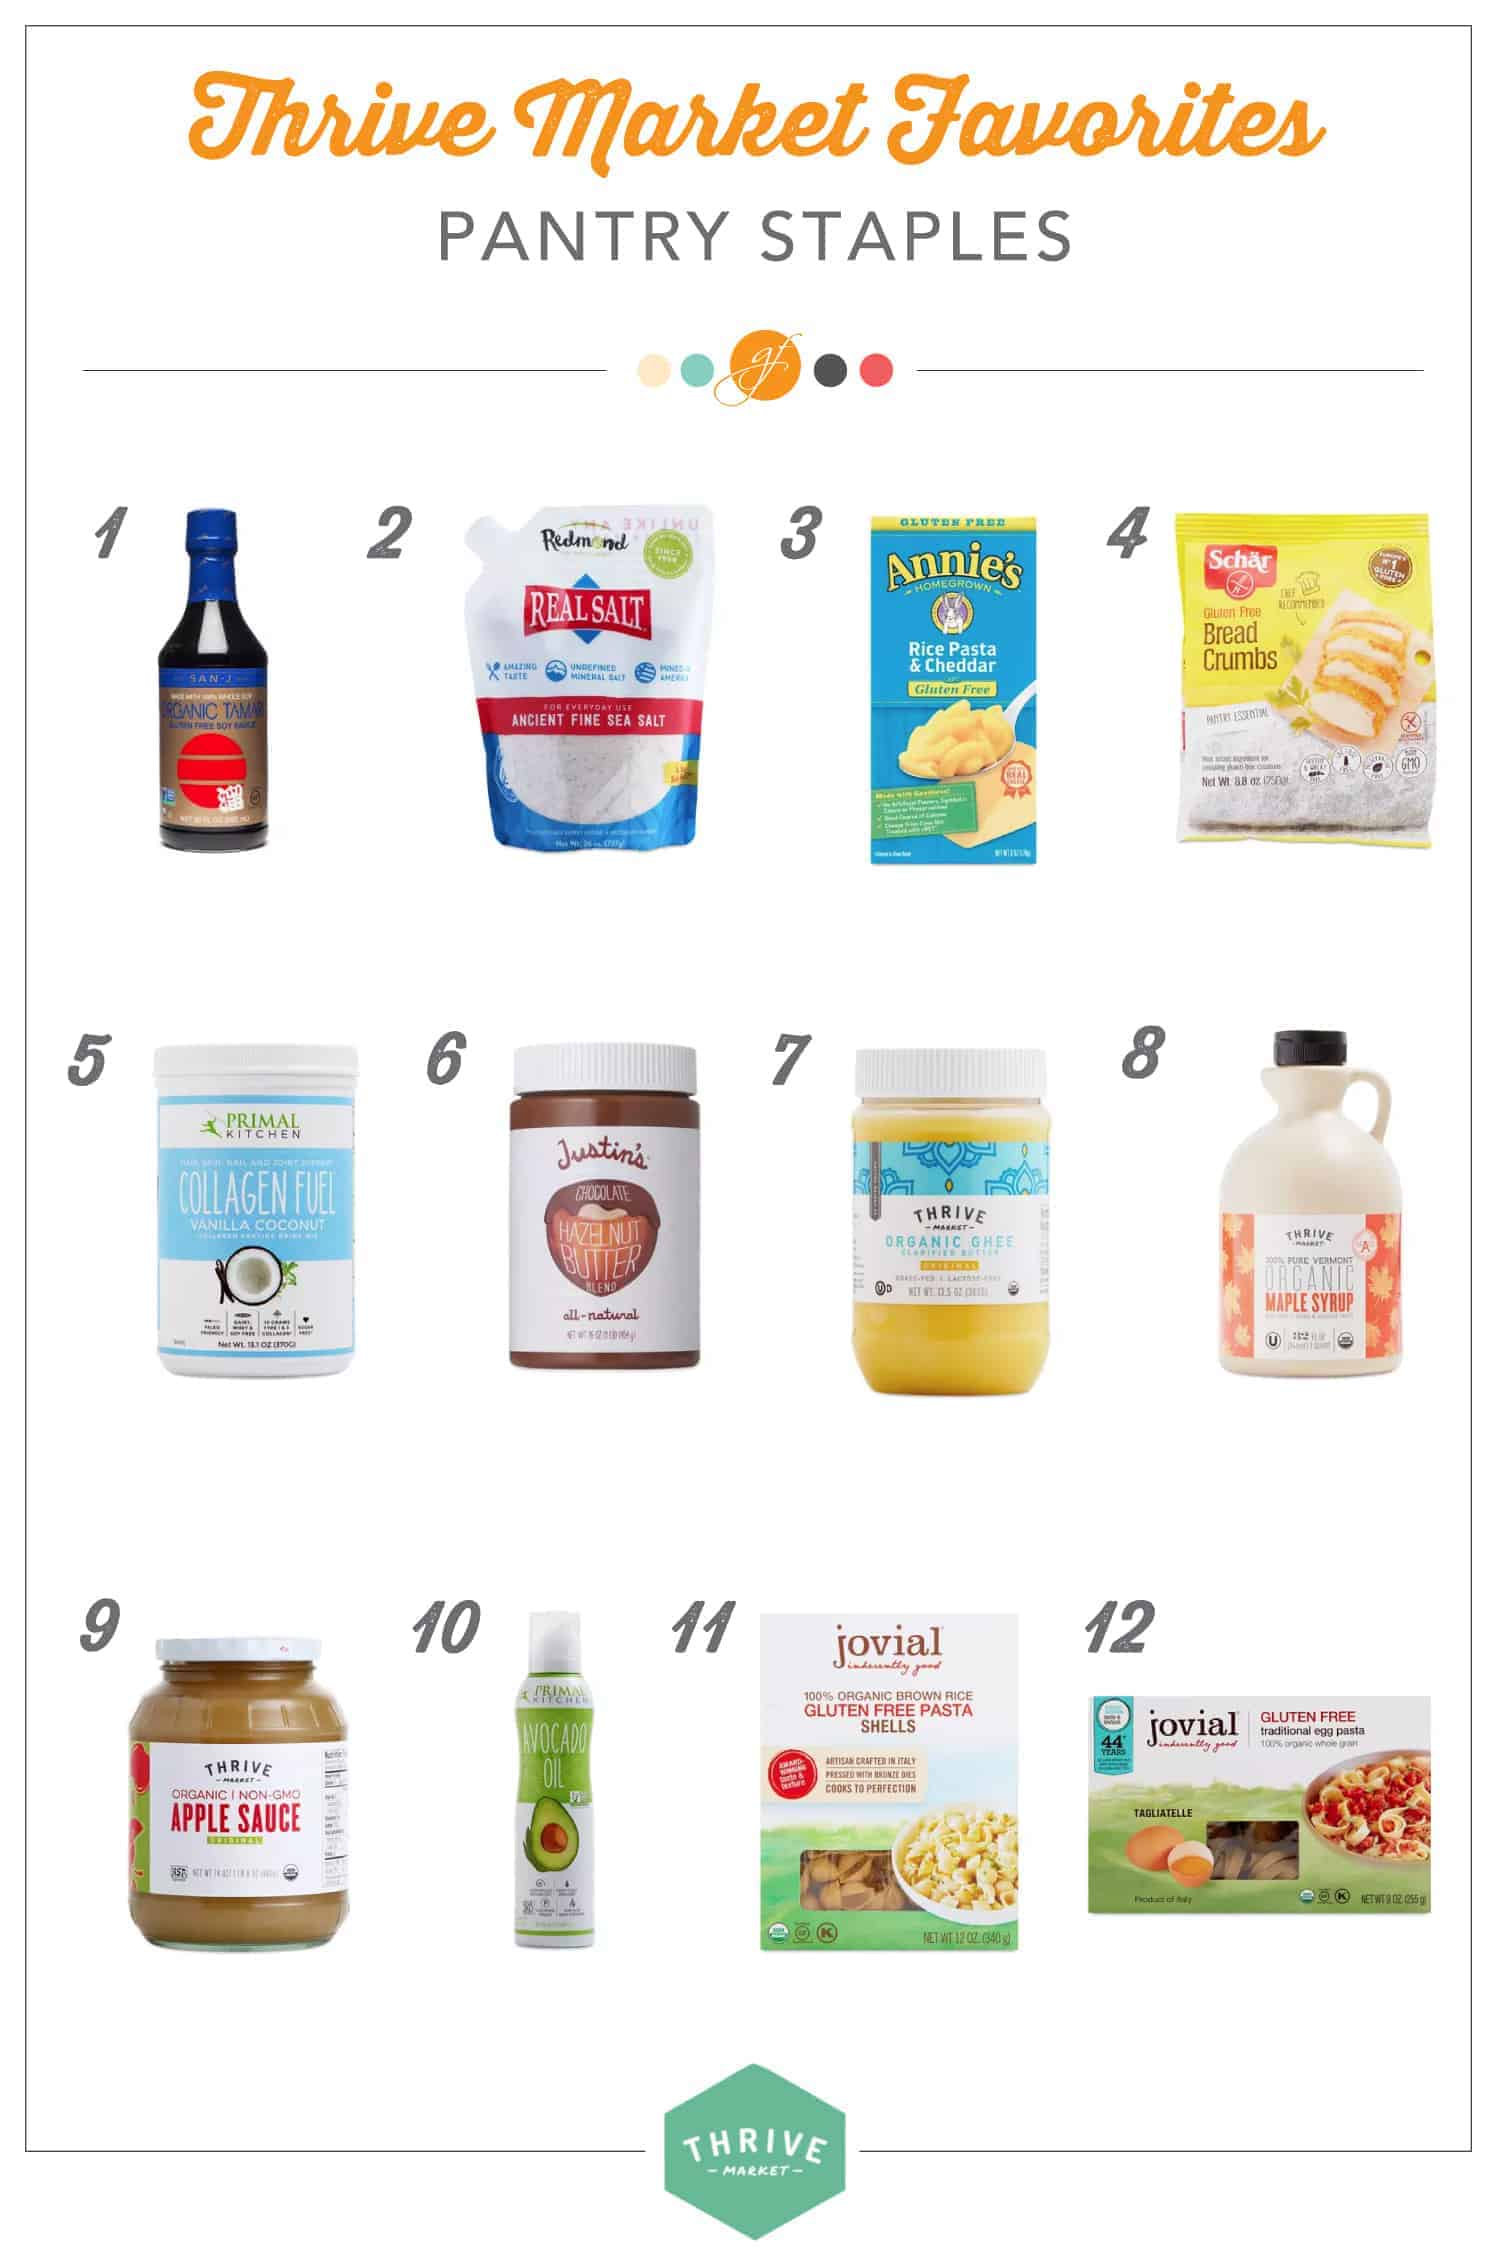 pantry staples from Thrive Market